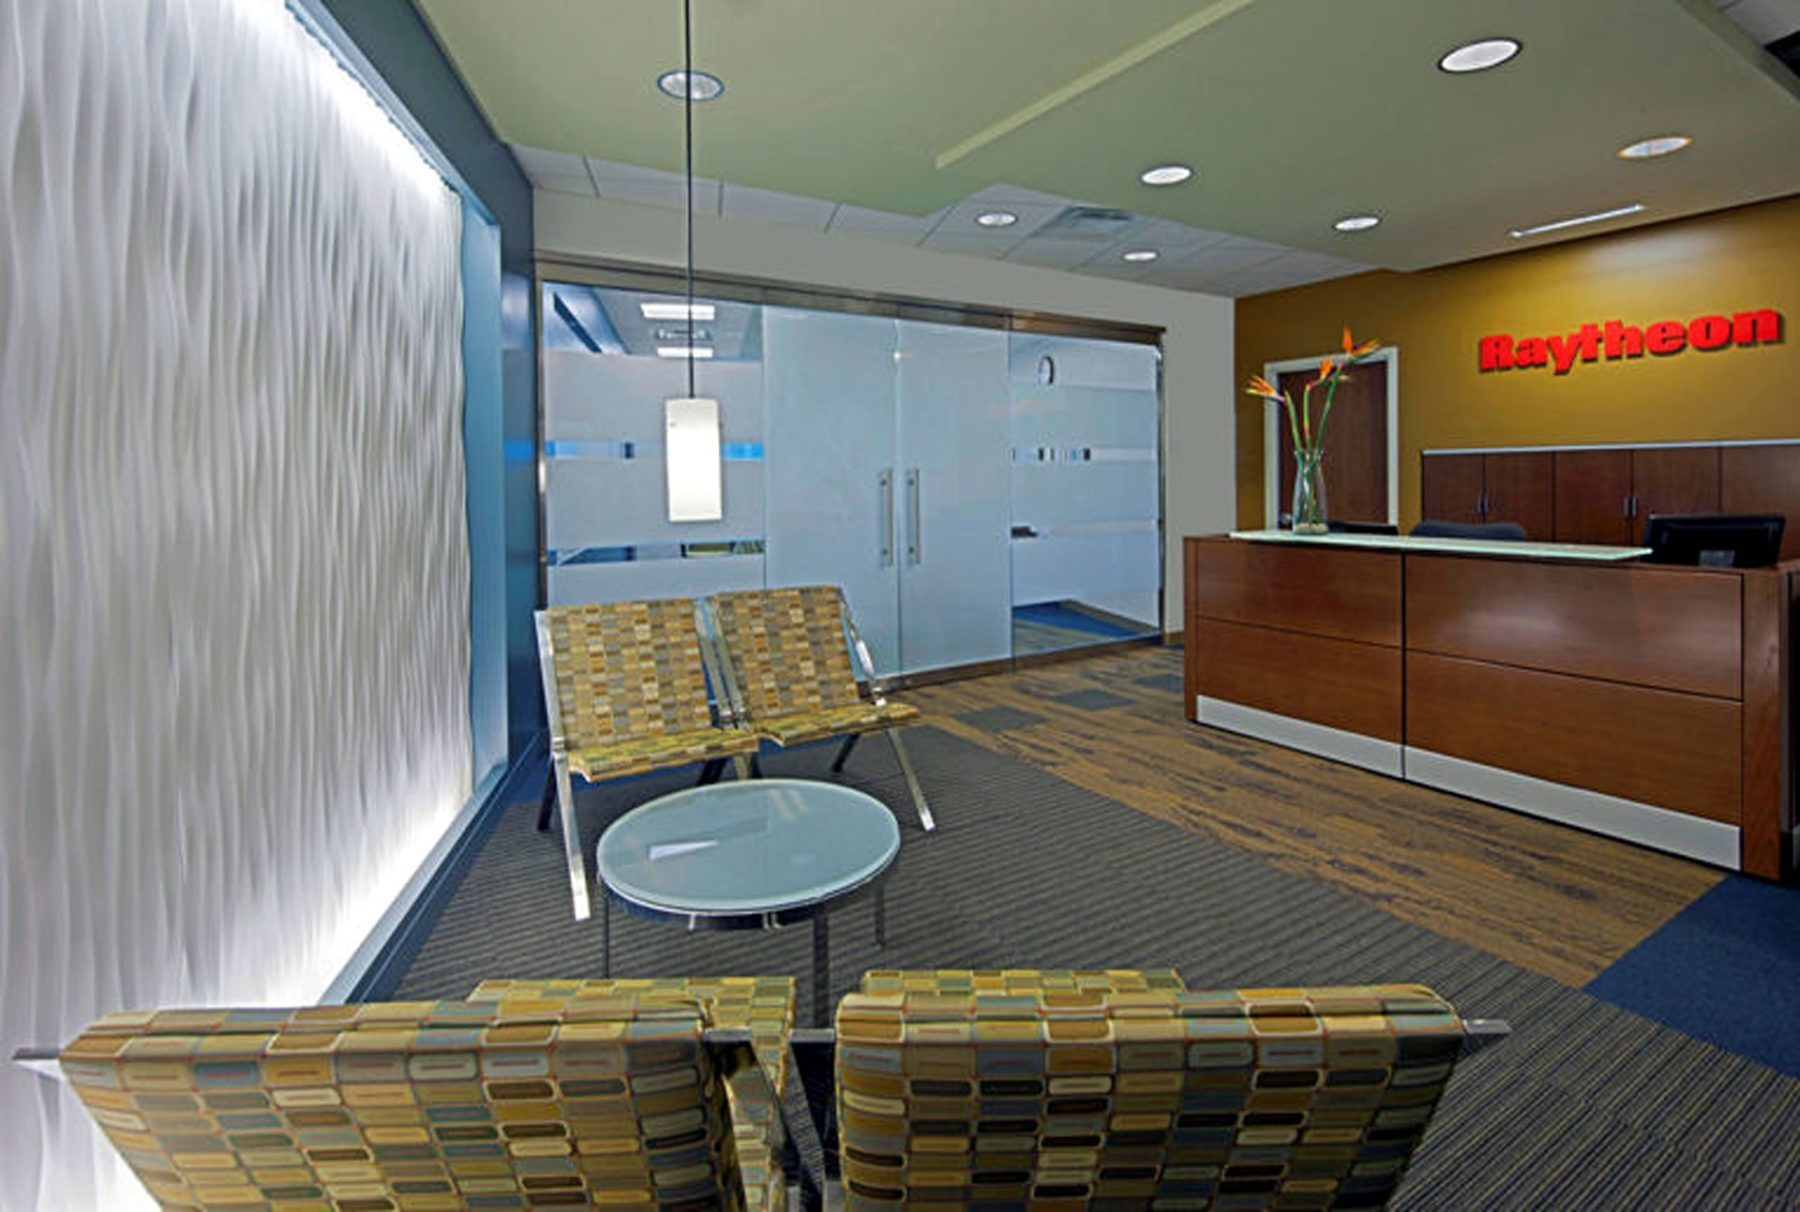 Raytheon at NBP 300 Tenant Fit-Out